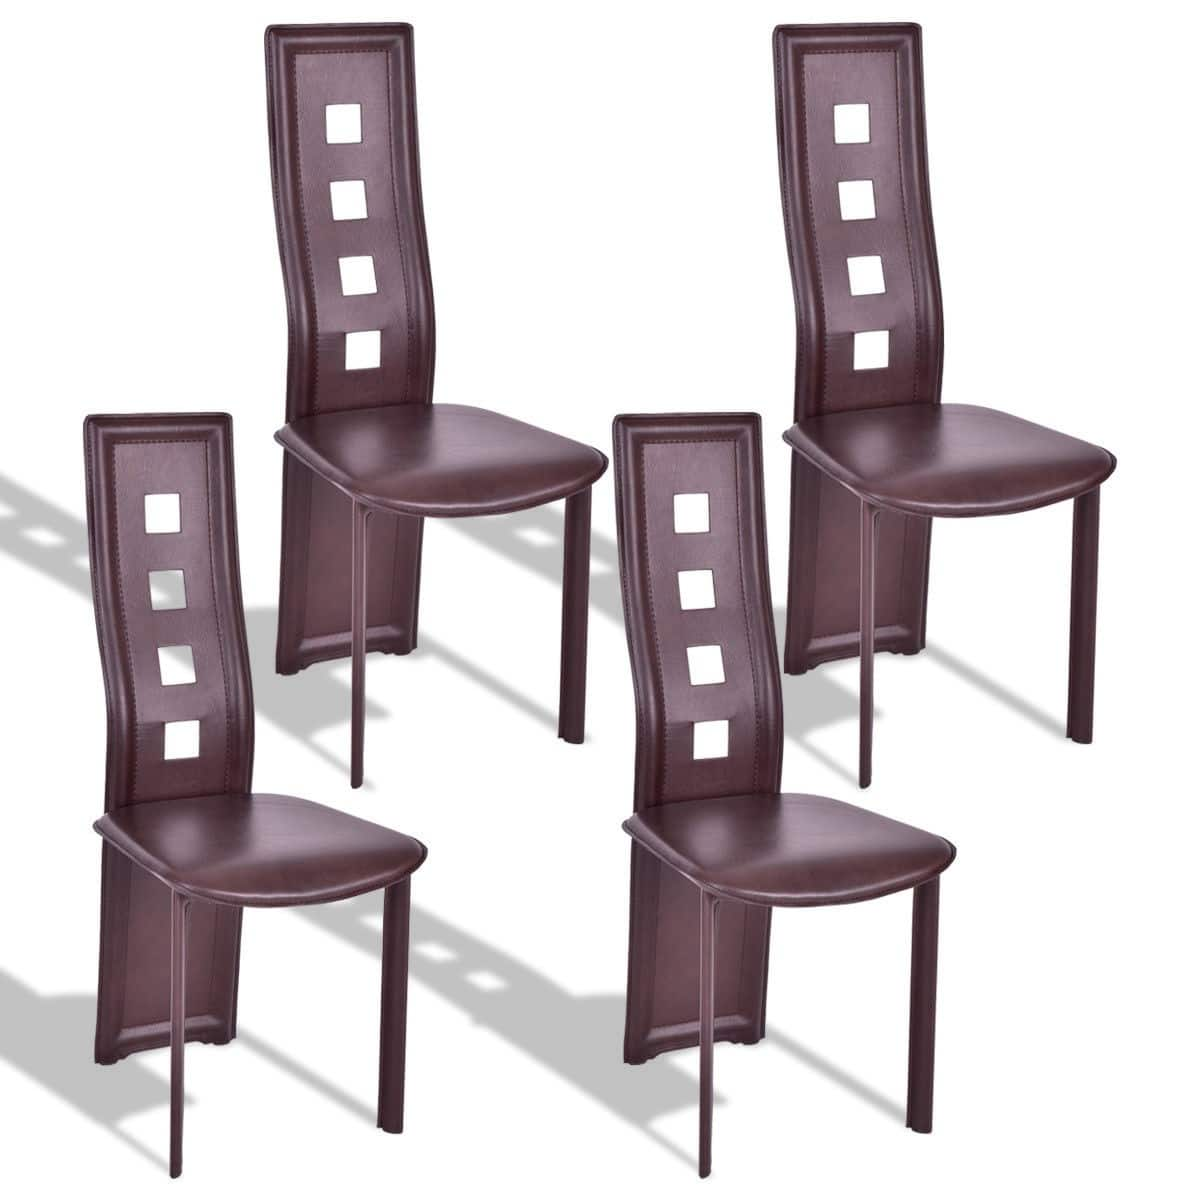 Costway 4-Piece Steel Frame High Back Armless Dining Chairs $60 + FS